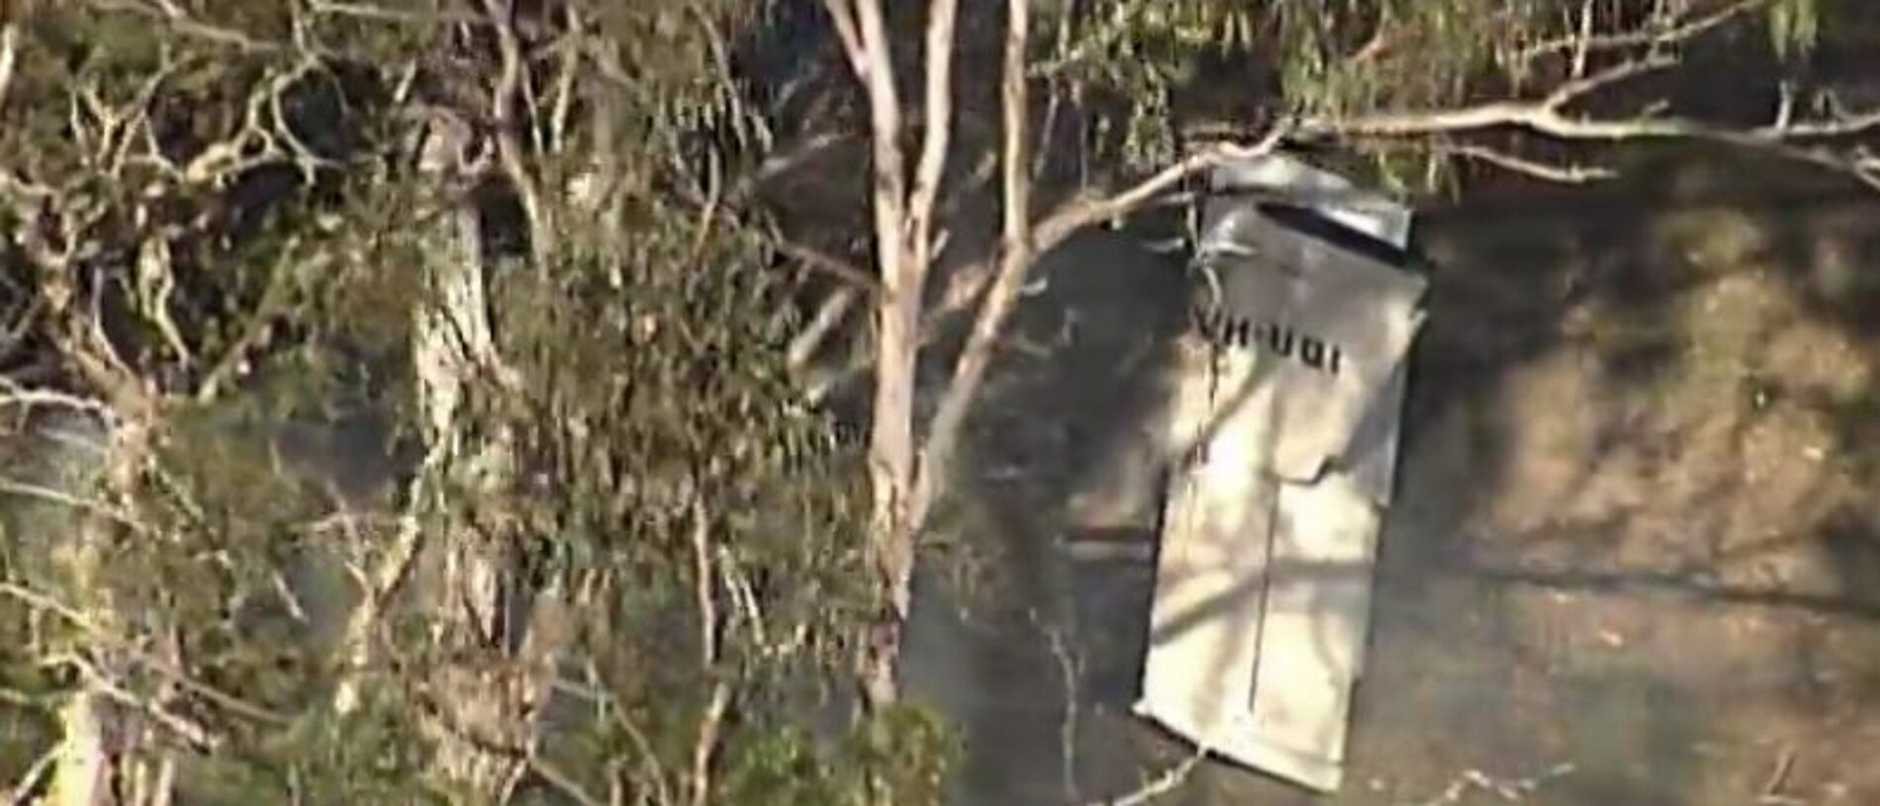 A light plane has crashed and caught fire in a paddock.